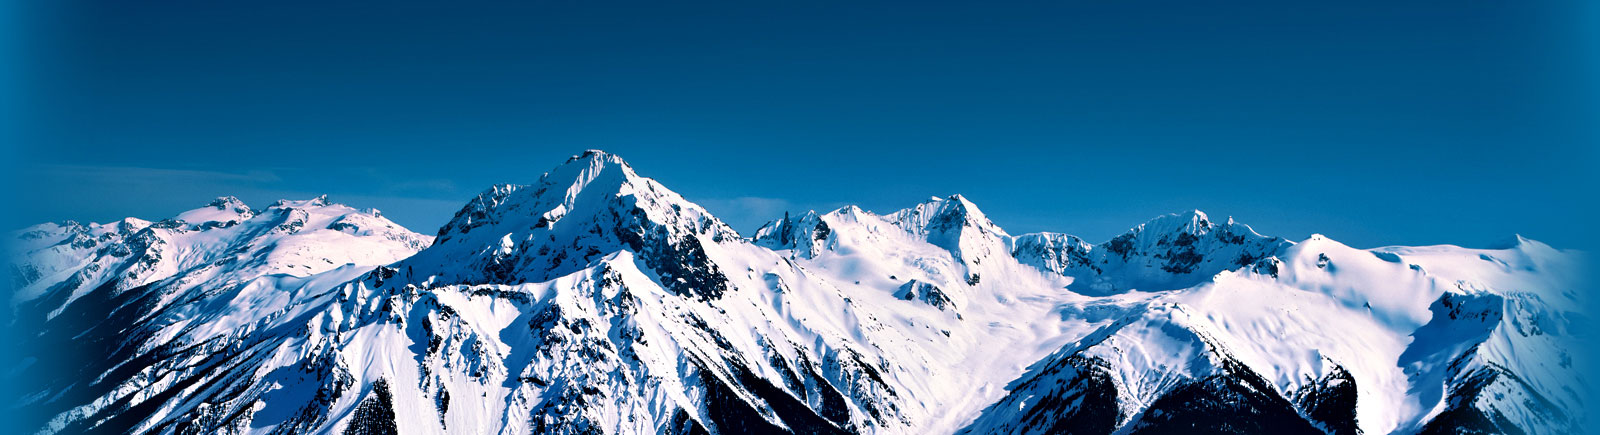 mountains background image